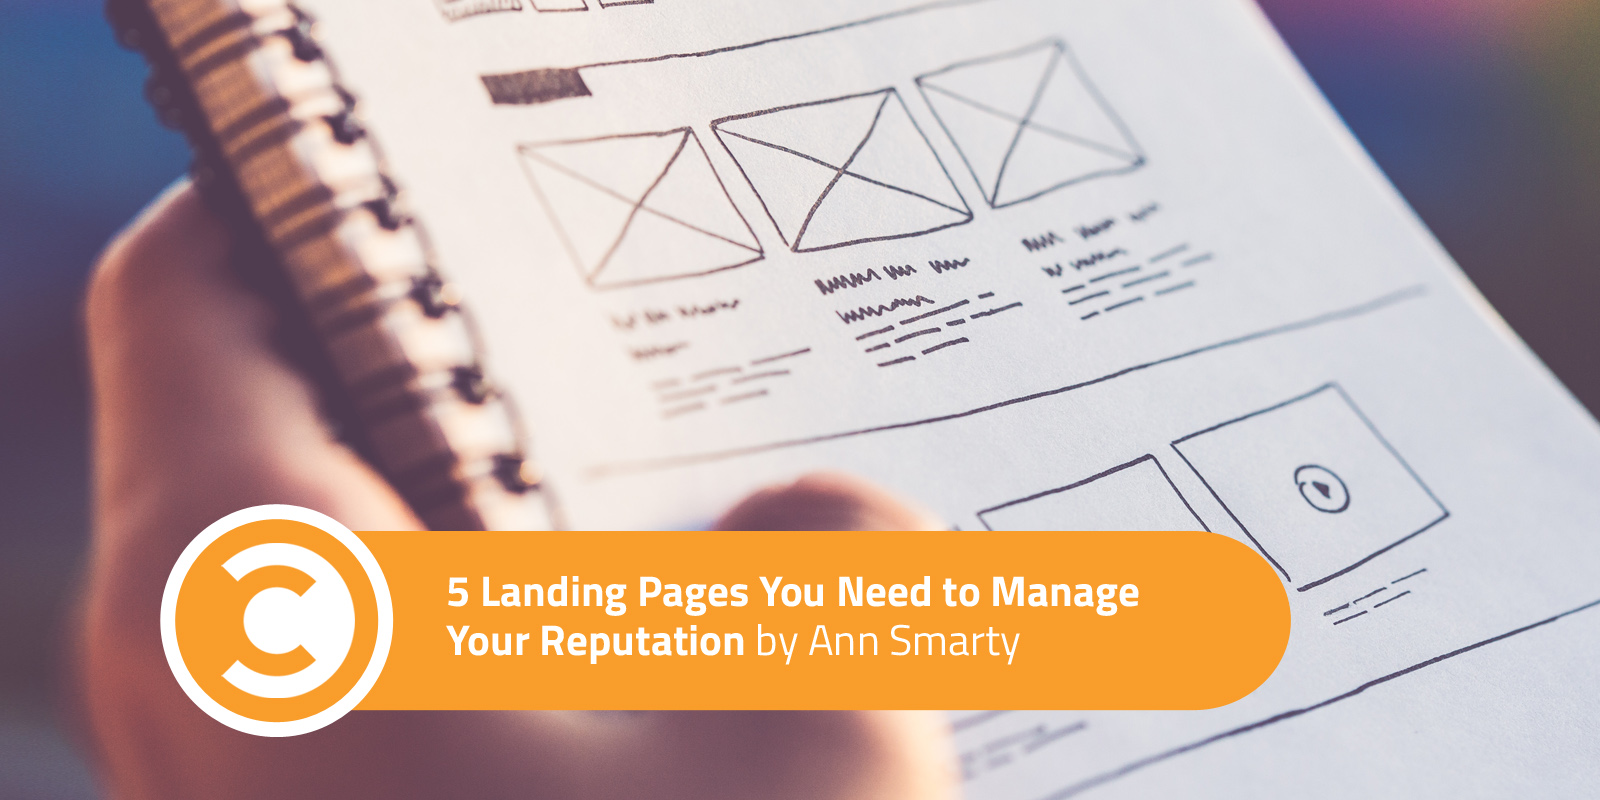 5 Landing Pages You Need to Manage Your Reputation